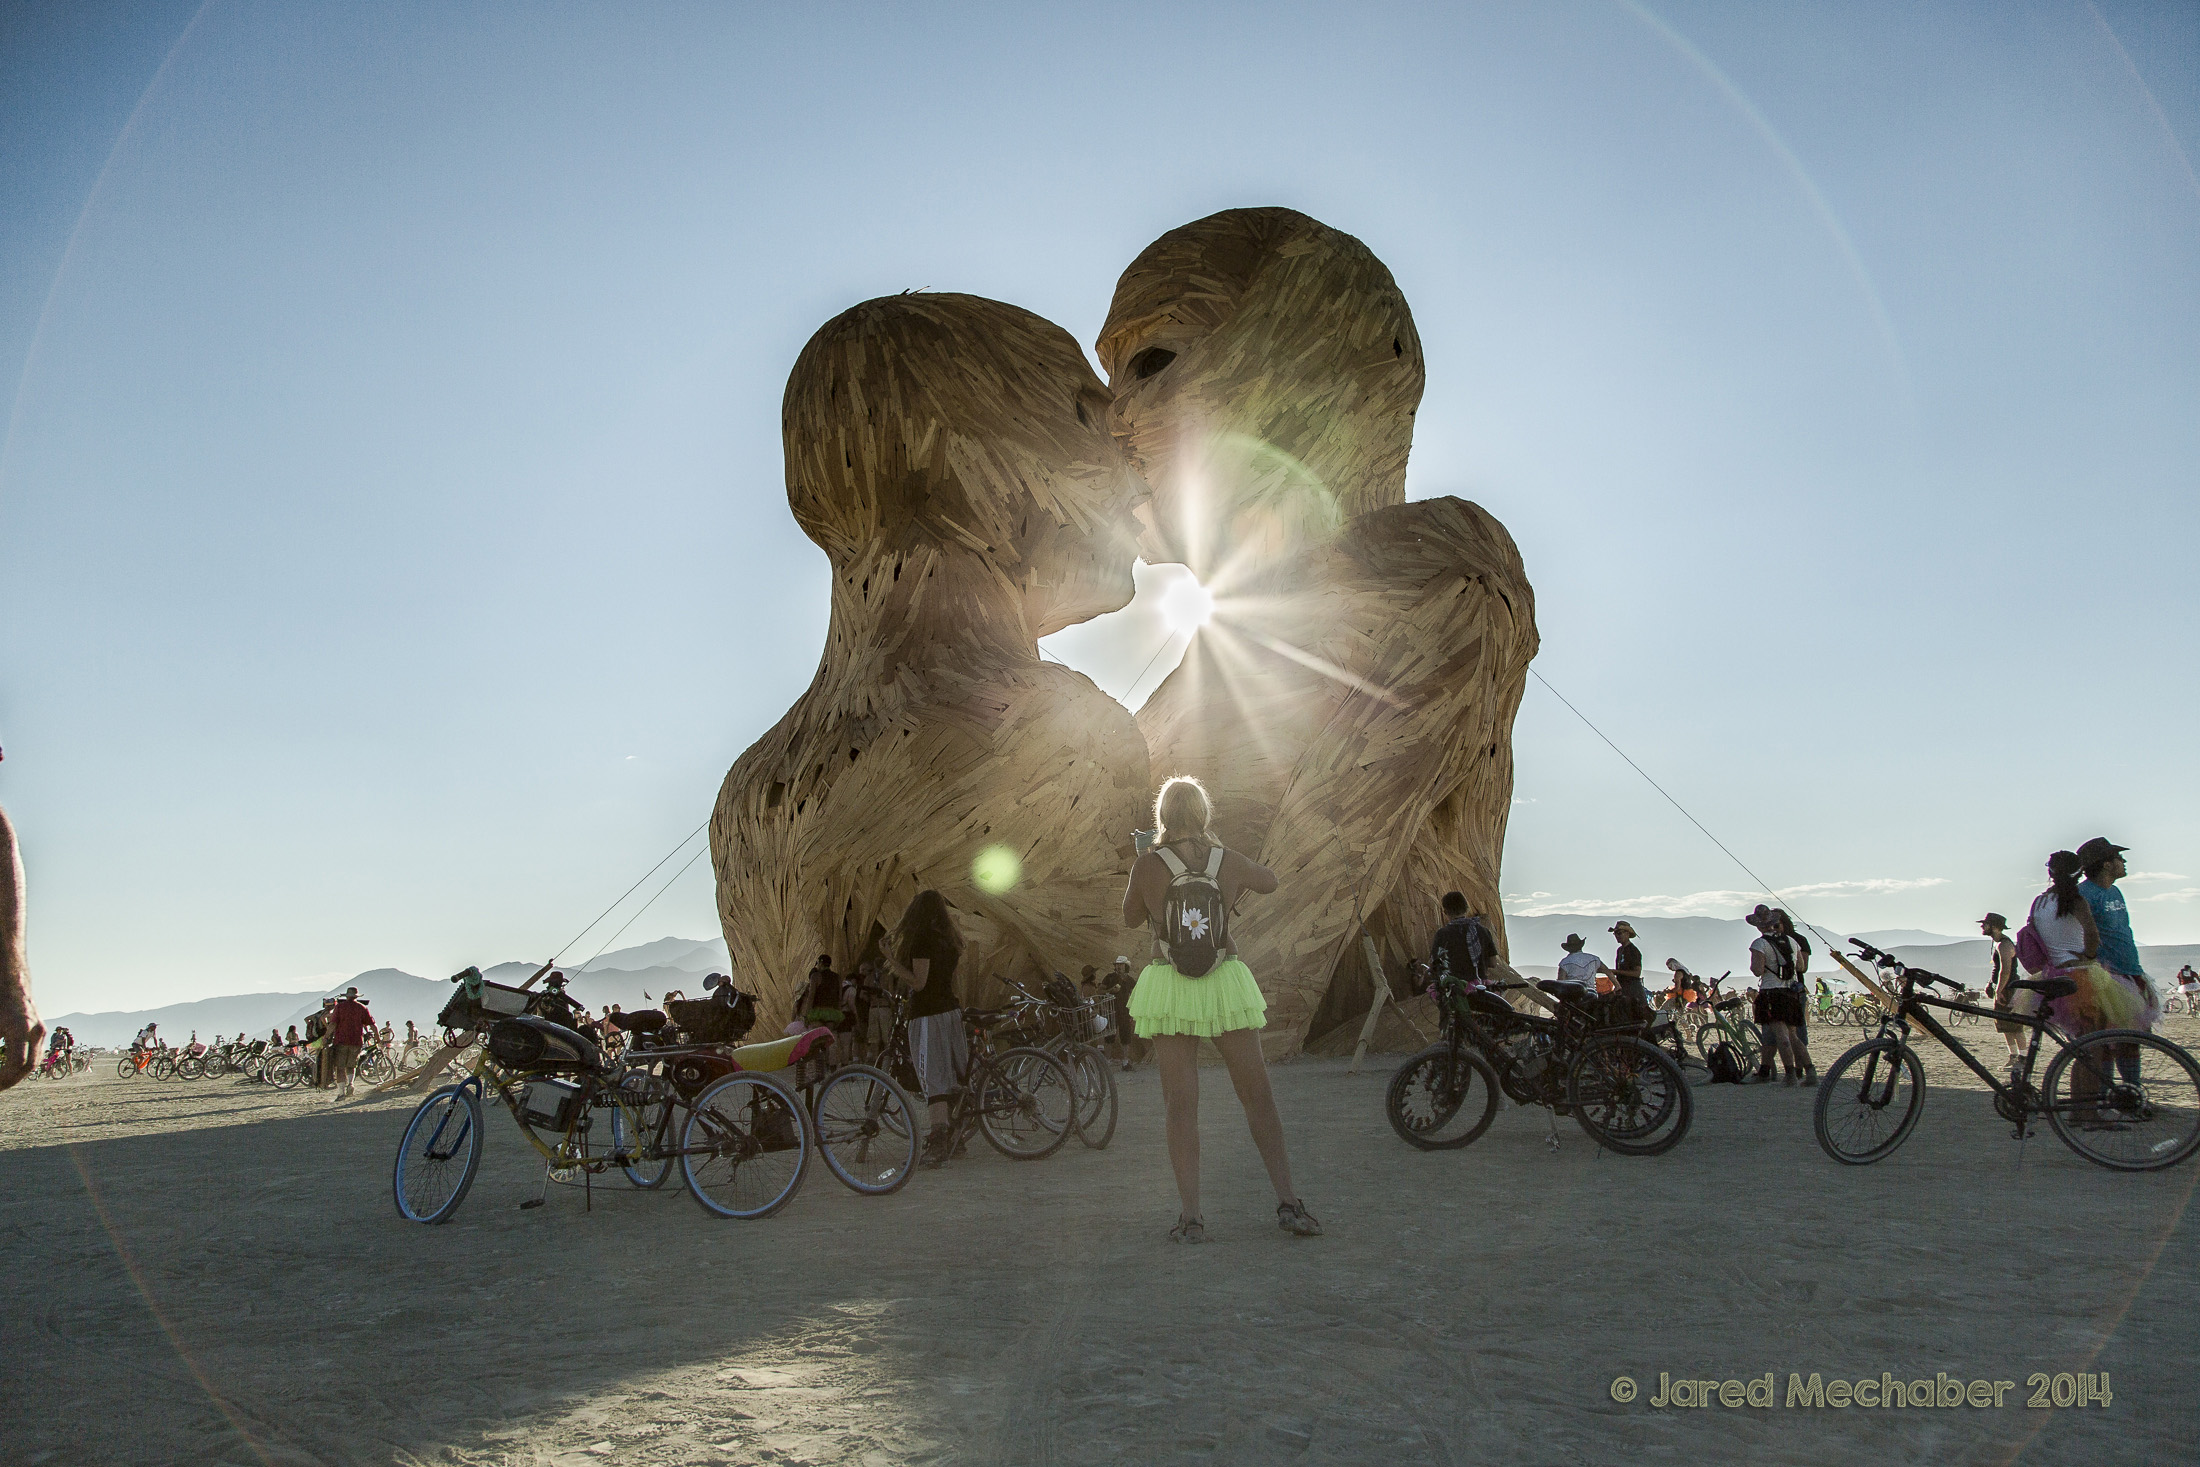 140826_Burningman_1236-2.jpg